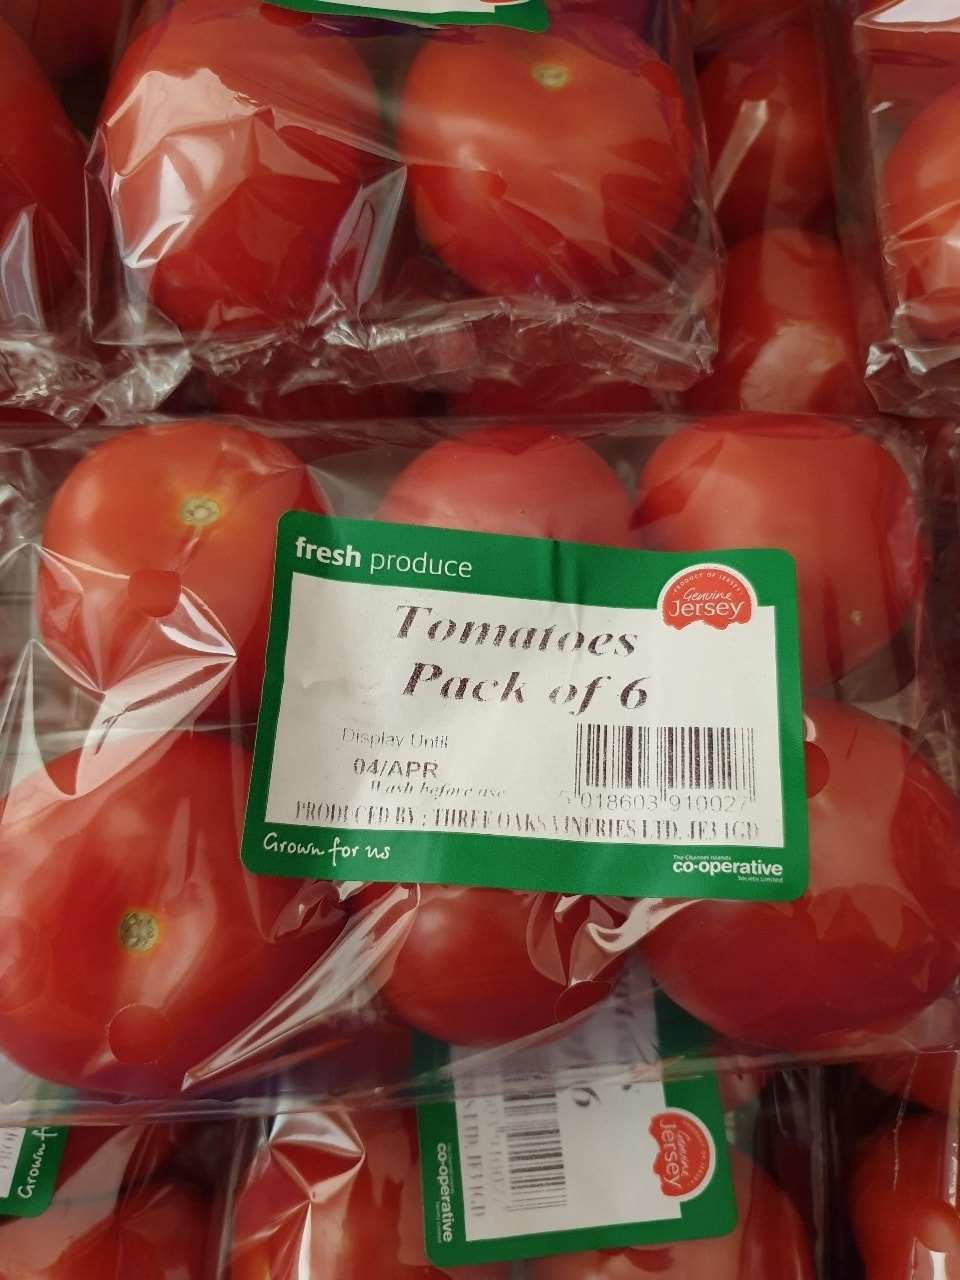 Tomatoes, Pack of 6